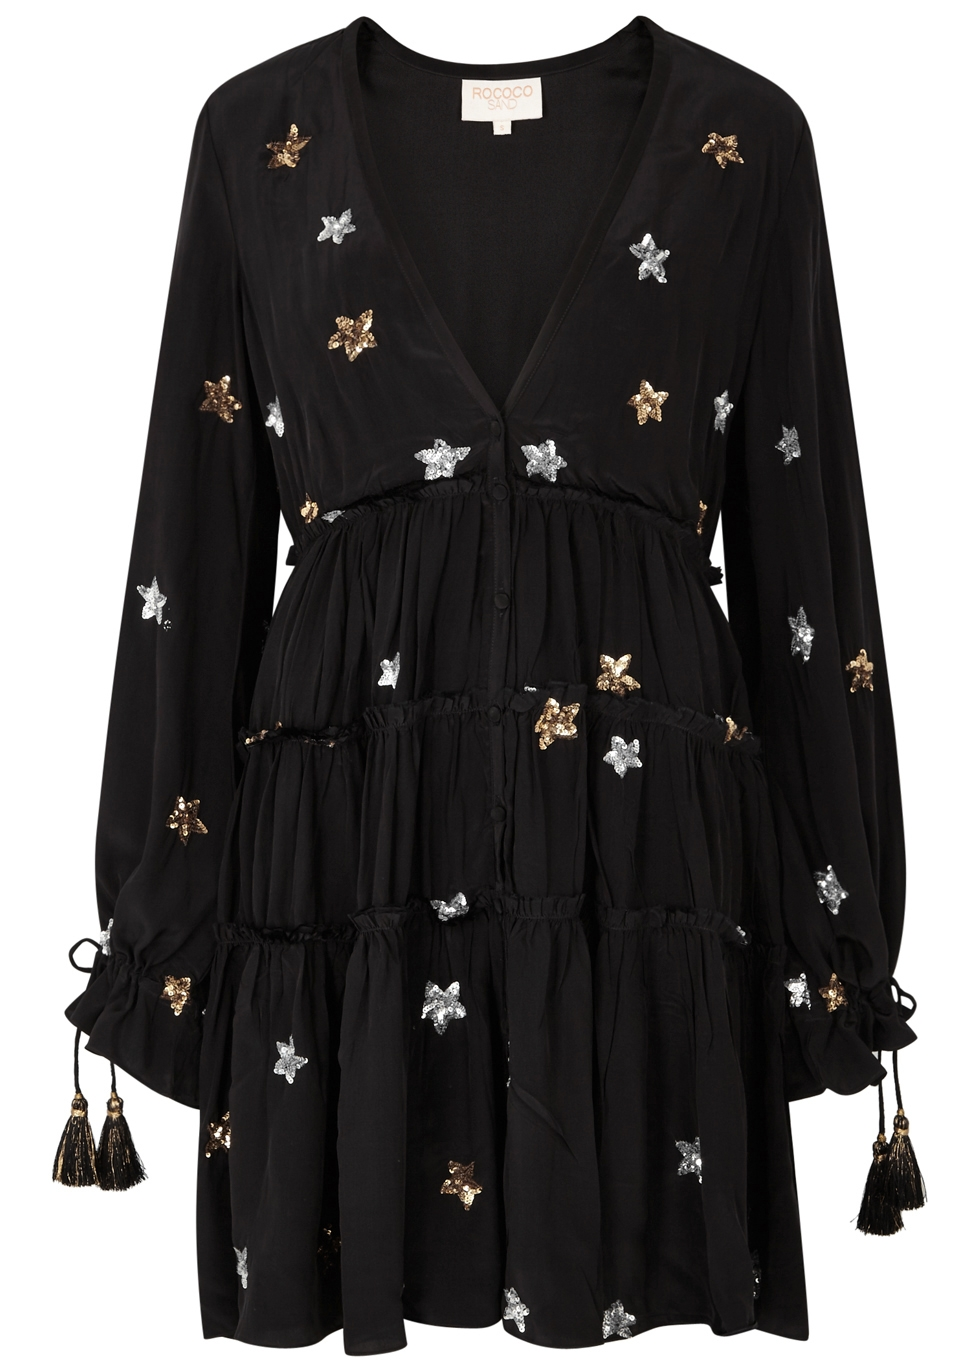 ROCOCO SAND ASTRAL STAR-EMBELLISHED TIERED DRESS